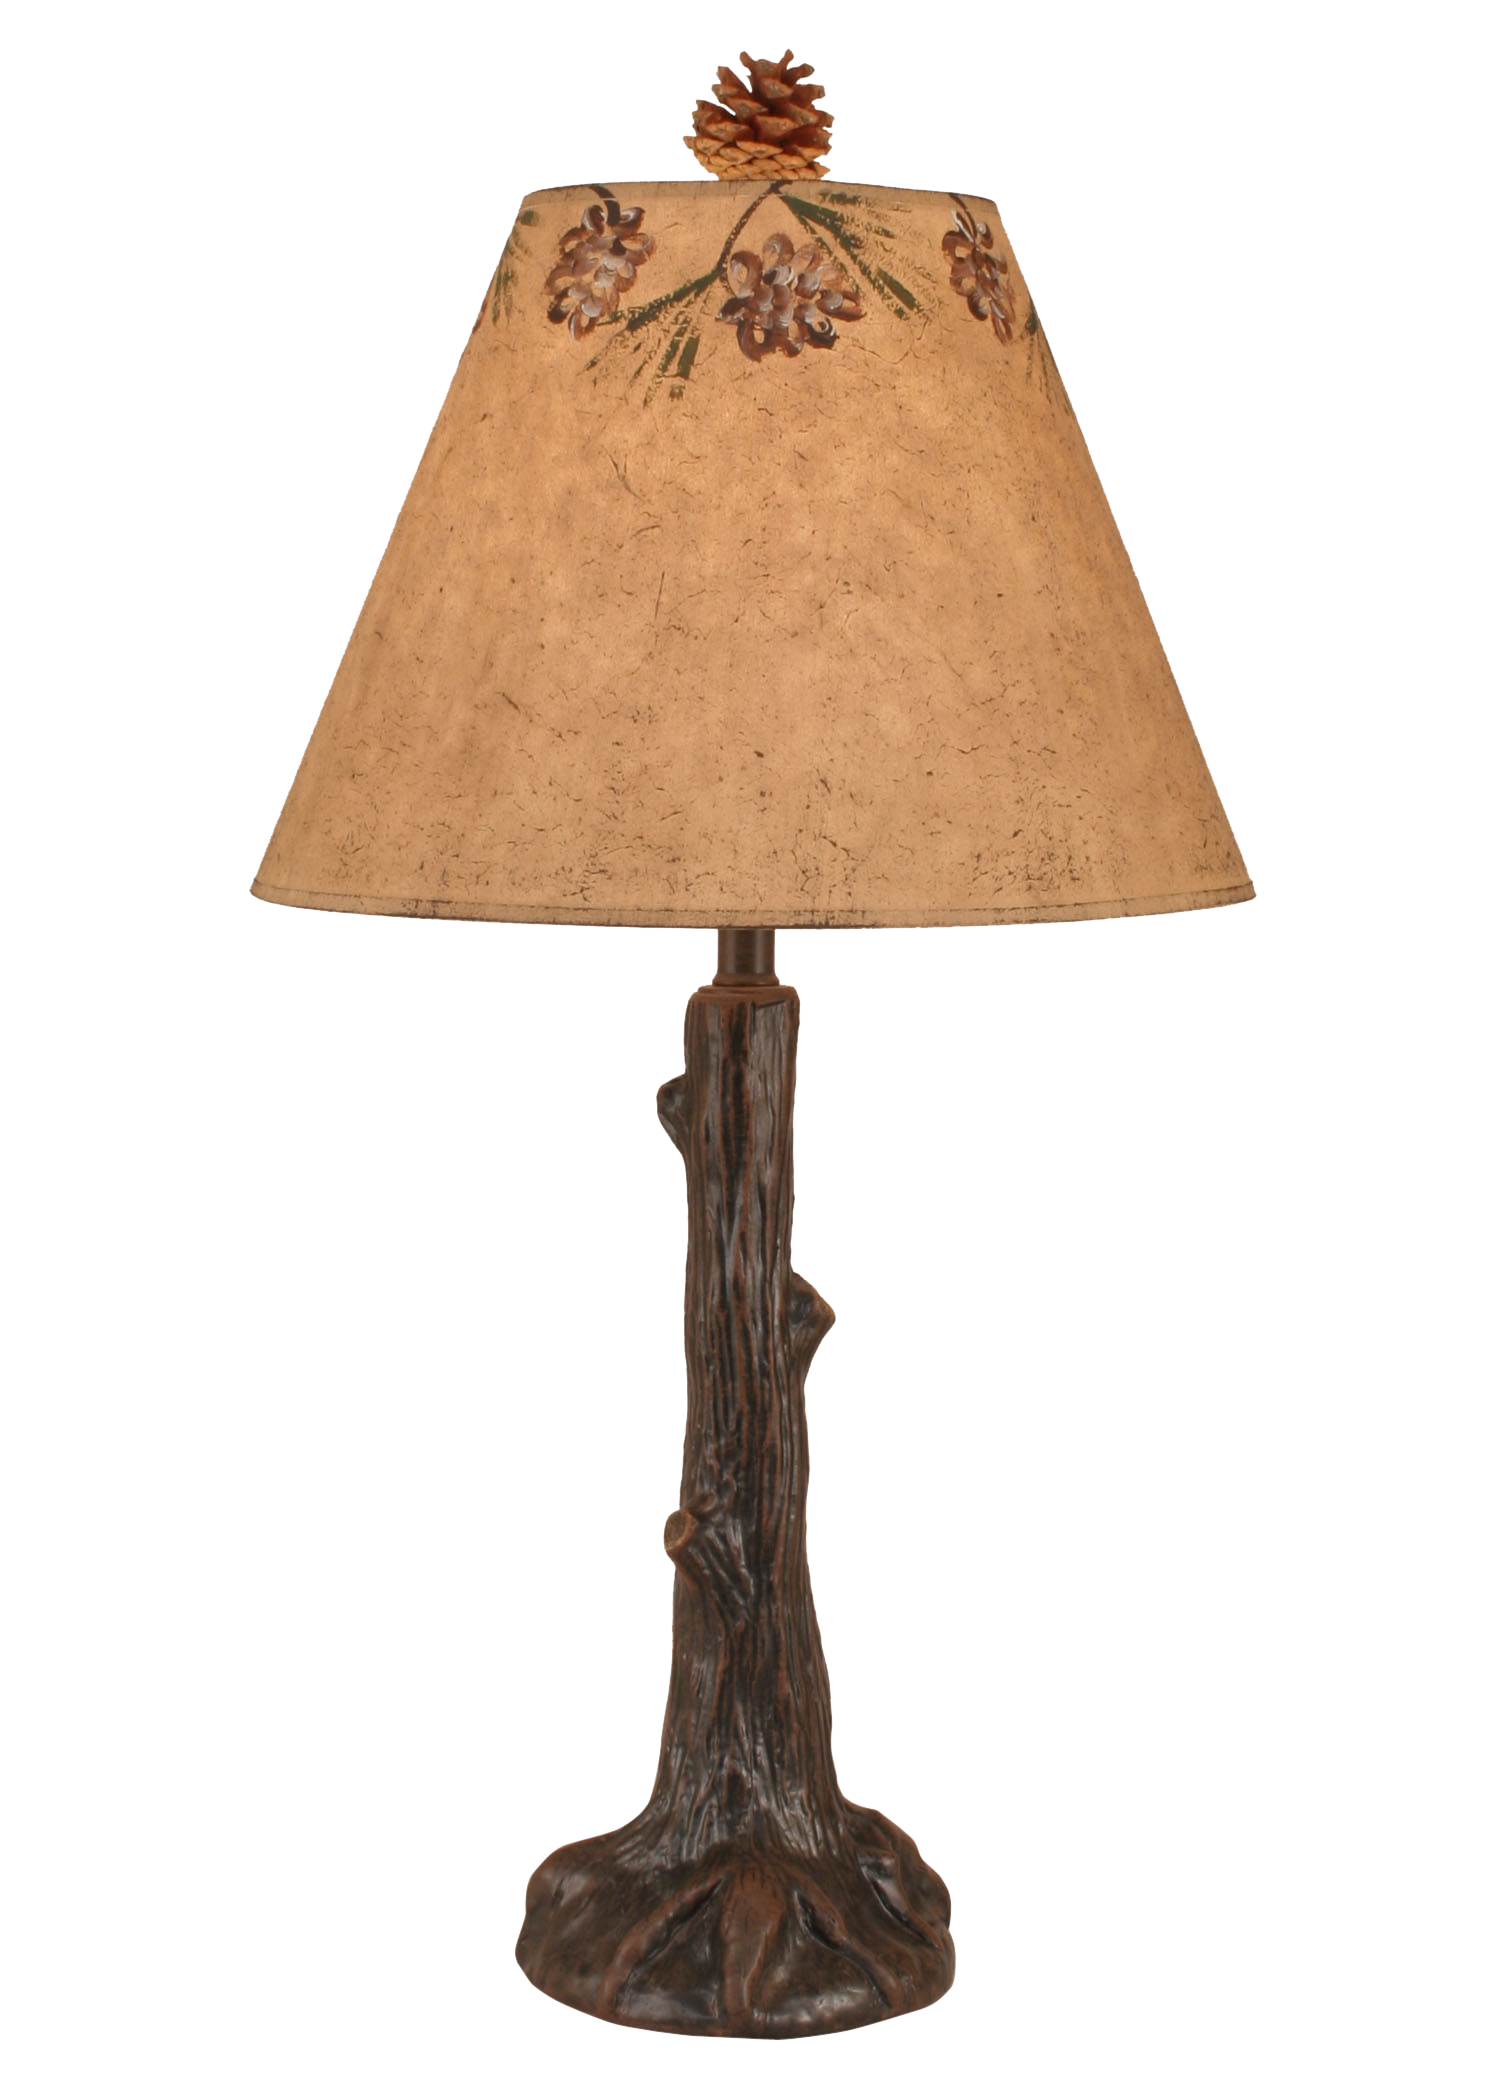 12R32E - Tree Trunk Rustic Pine Cone Shade - 27 Inch Rustic Table Lamp - ThunderHorseCabin.com